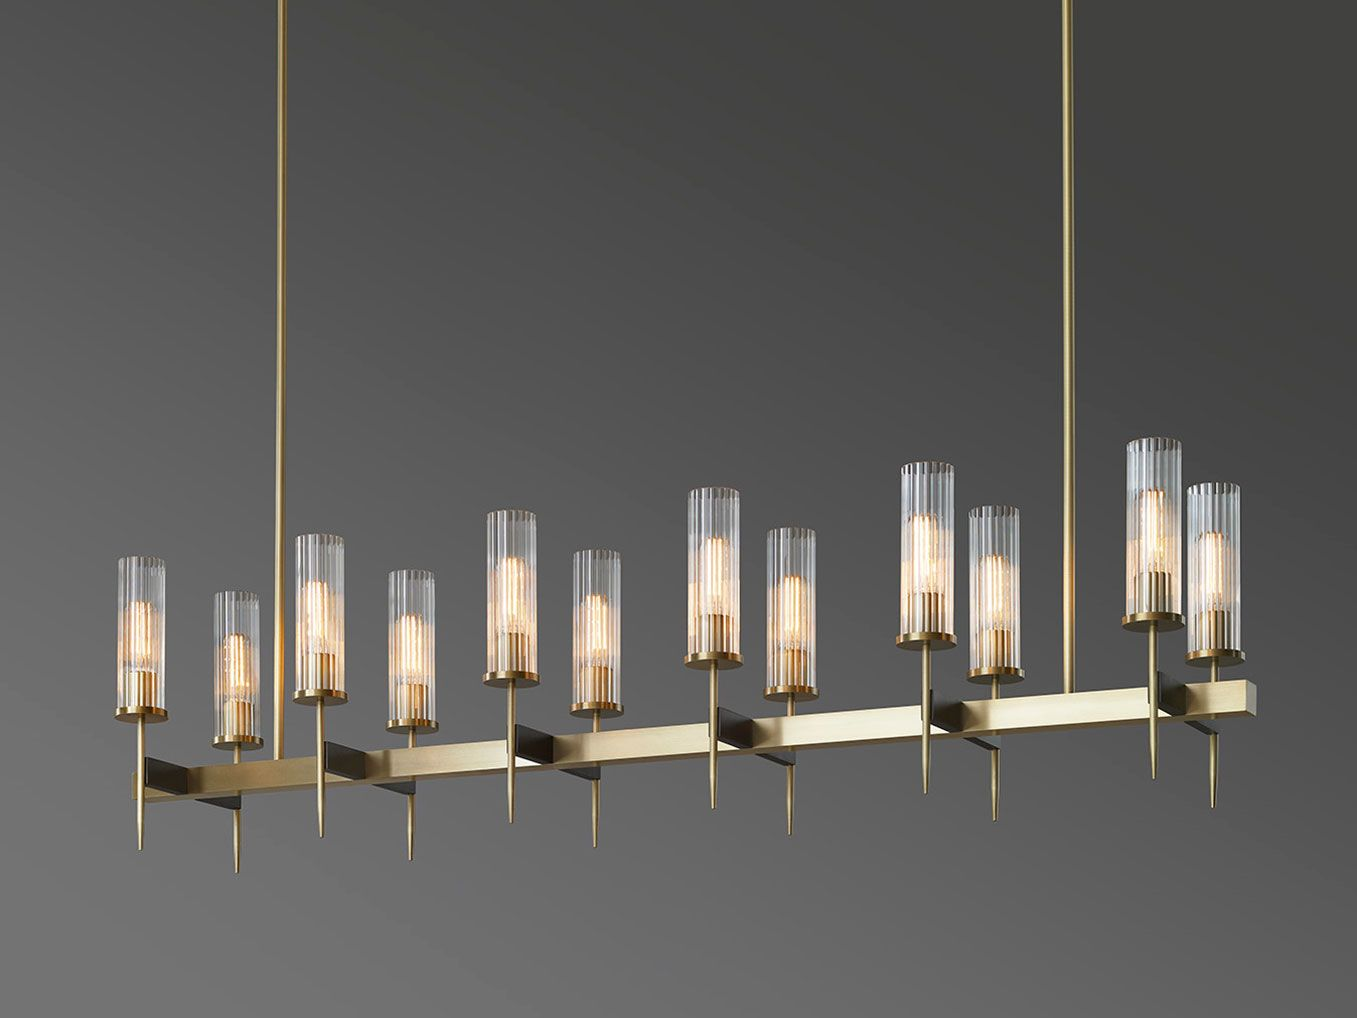 Jonathan browning studios alouette chandelier love i lighting metro lighting multi light pendant constructed from brass in an antique finish with clear contorax glass cylinder shades wired 12 x arubaitofo Gallery